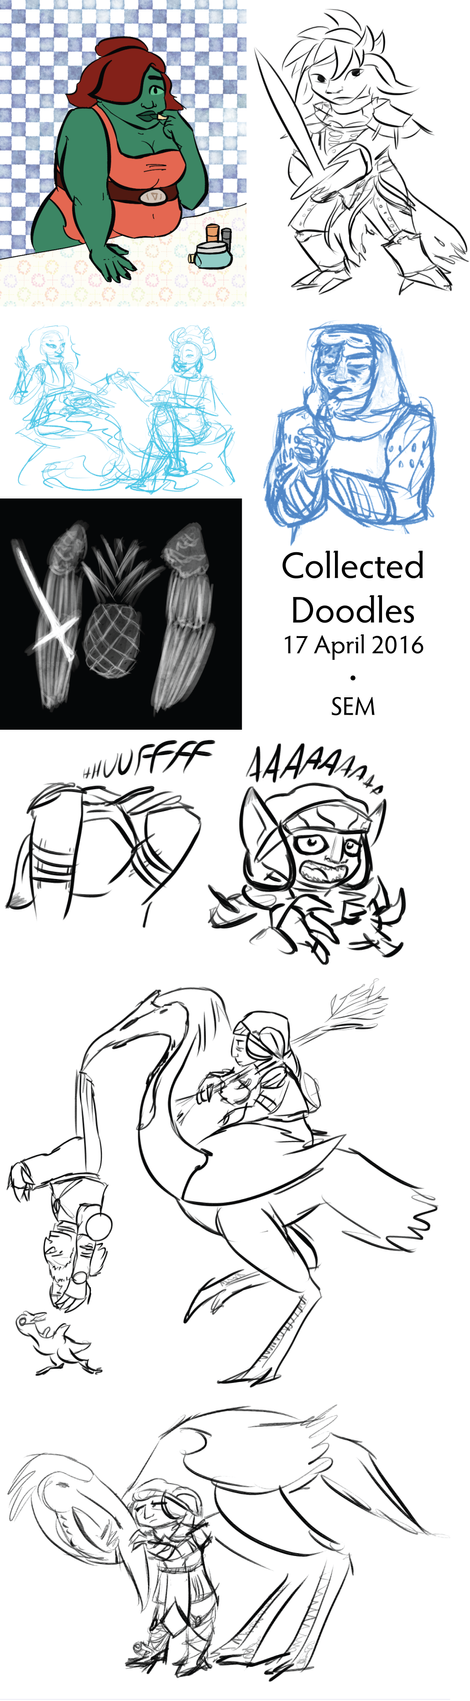 Collected Doodles 17 April 2016 by Teela-B